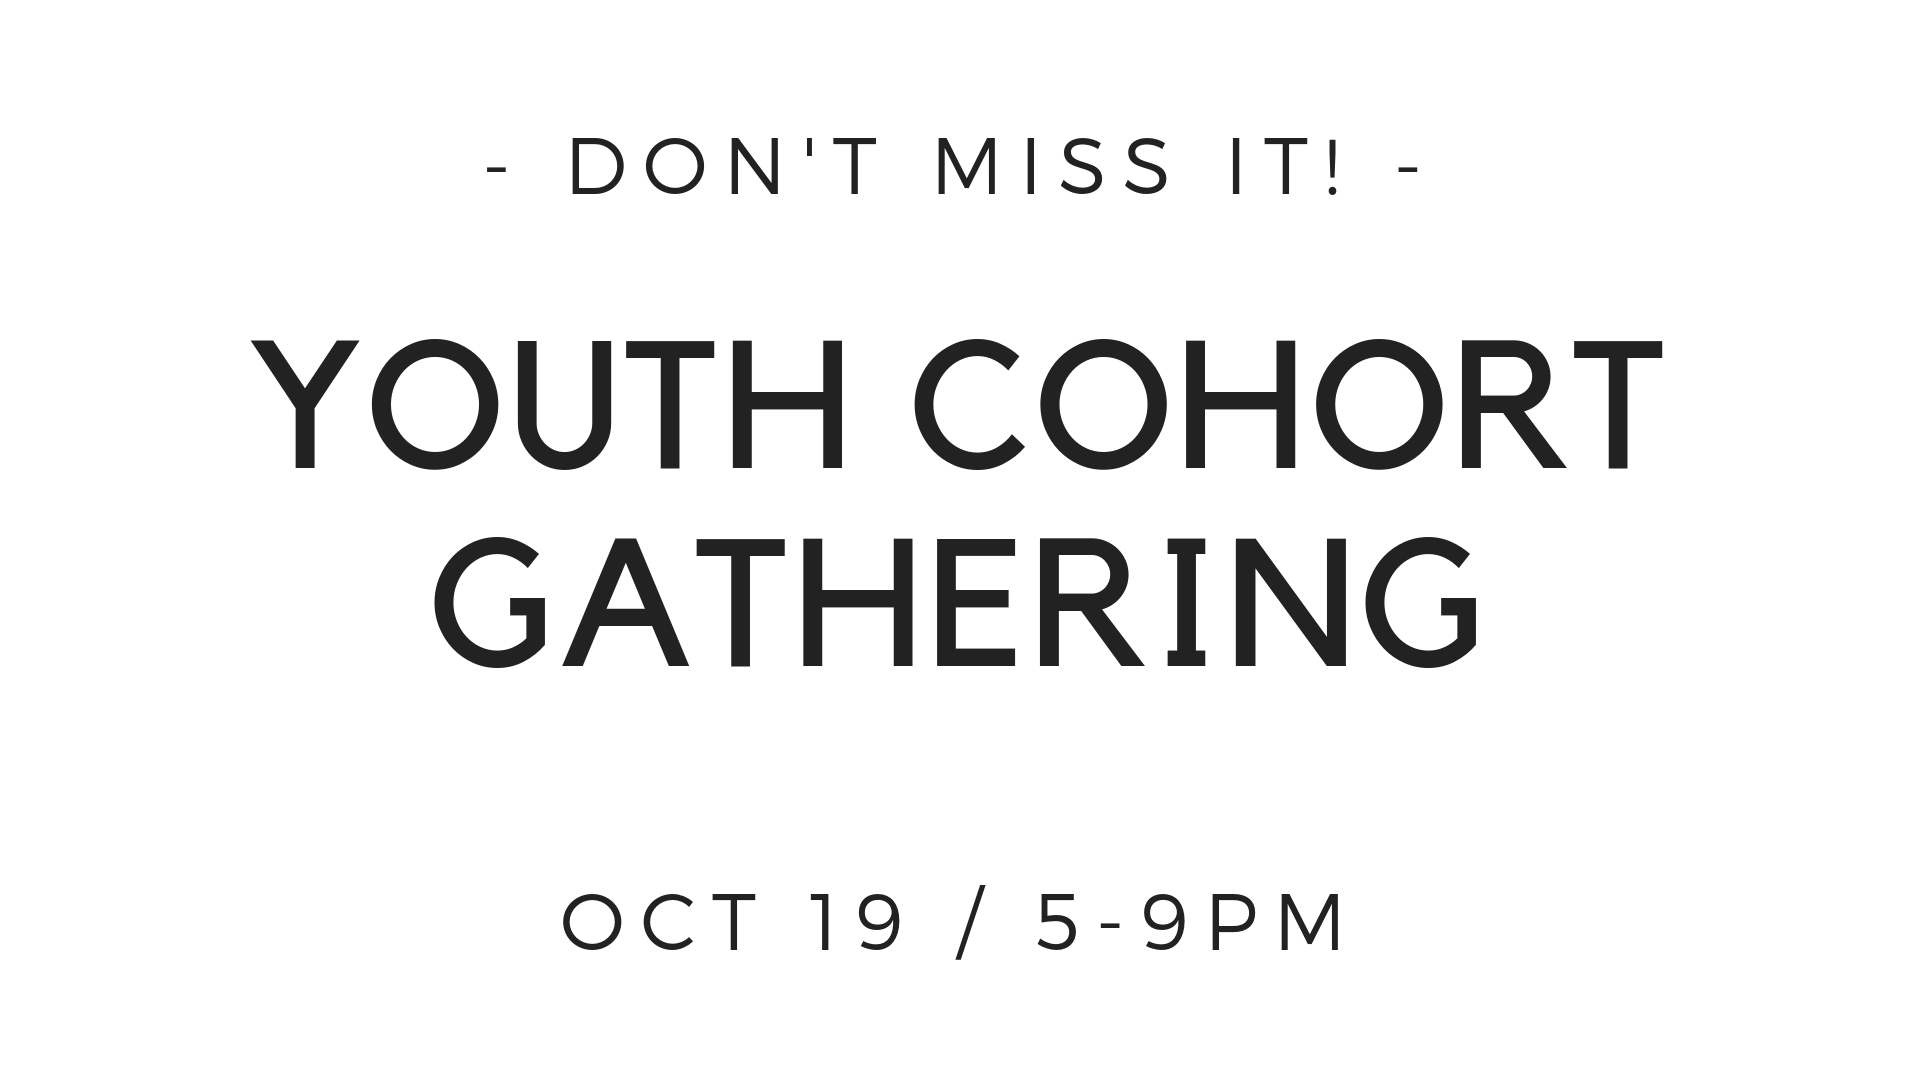 On Friday Oct. 19, 5pm-9pm, we'll be hosting a gathering for the Youth Cohort here at the church. This is for any young people ages 10 and up.